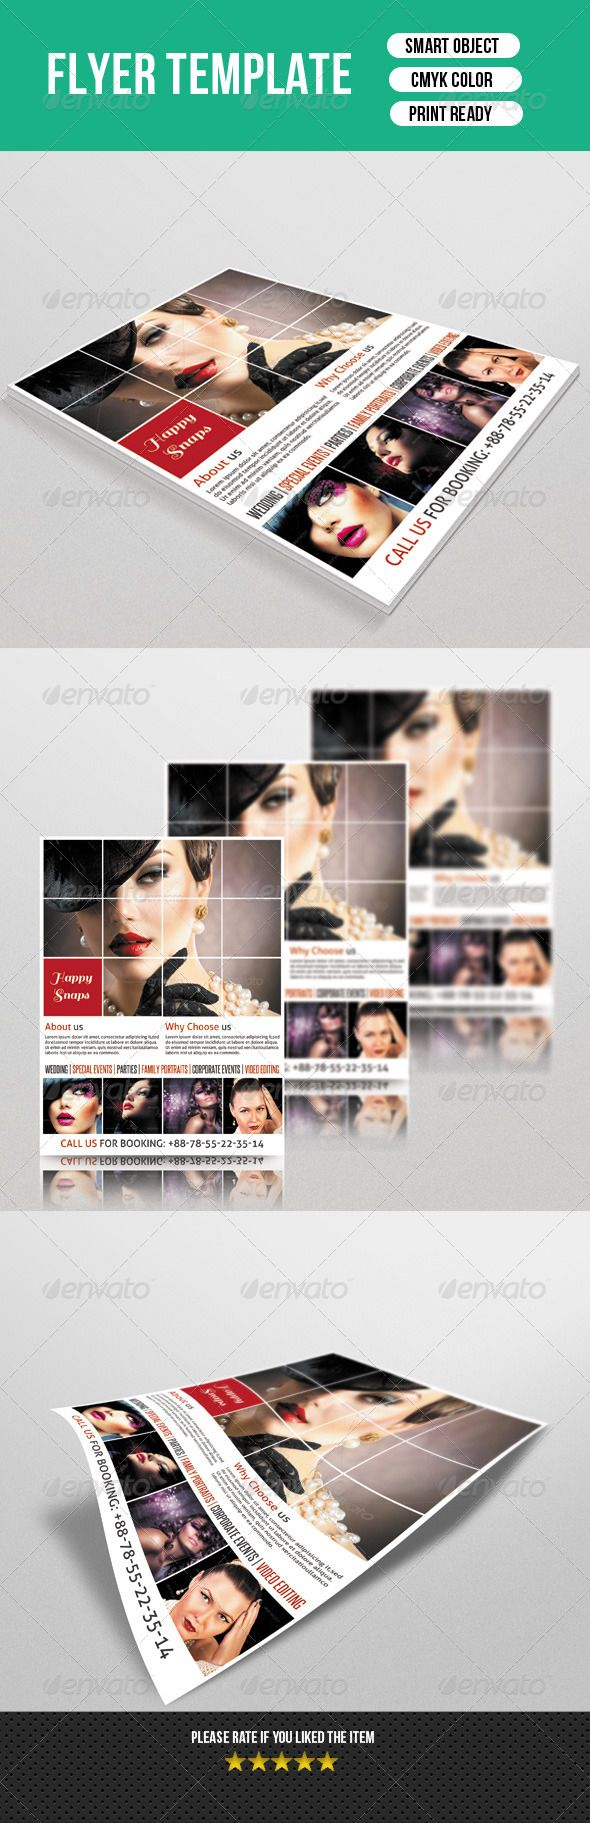 1703 best Business Flyer Template images on Pinterest | Business ...